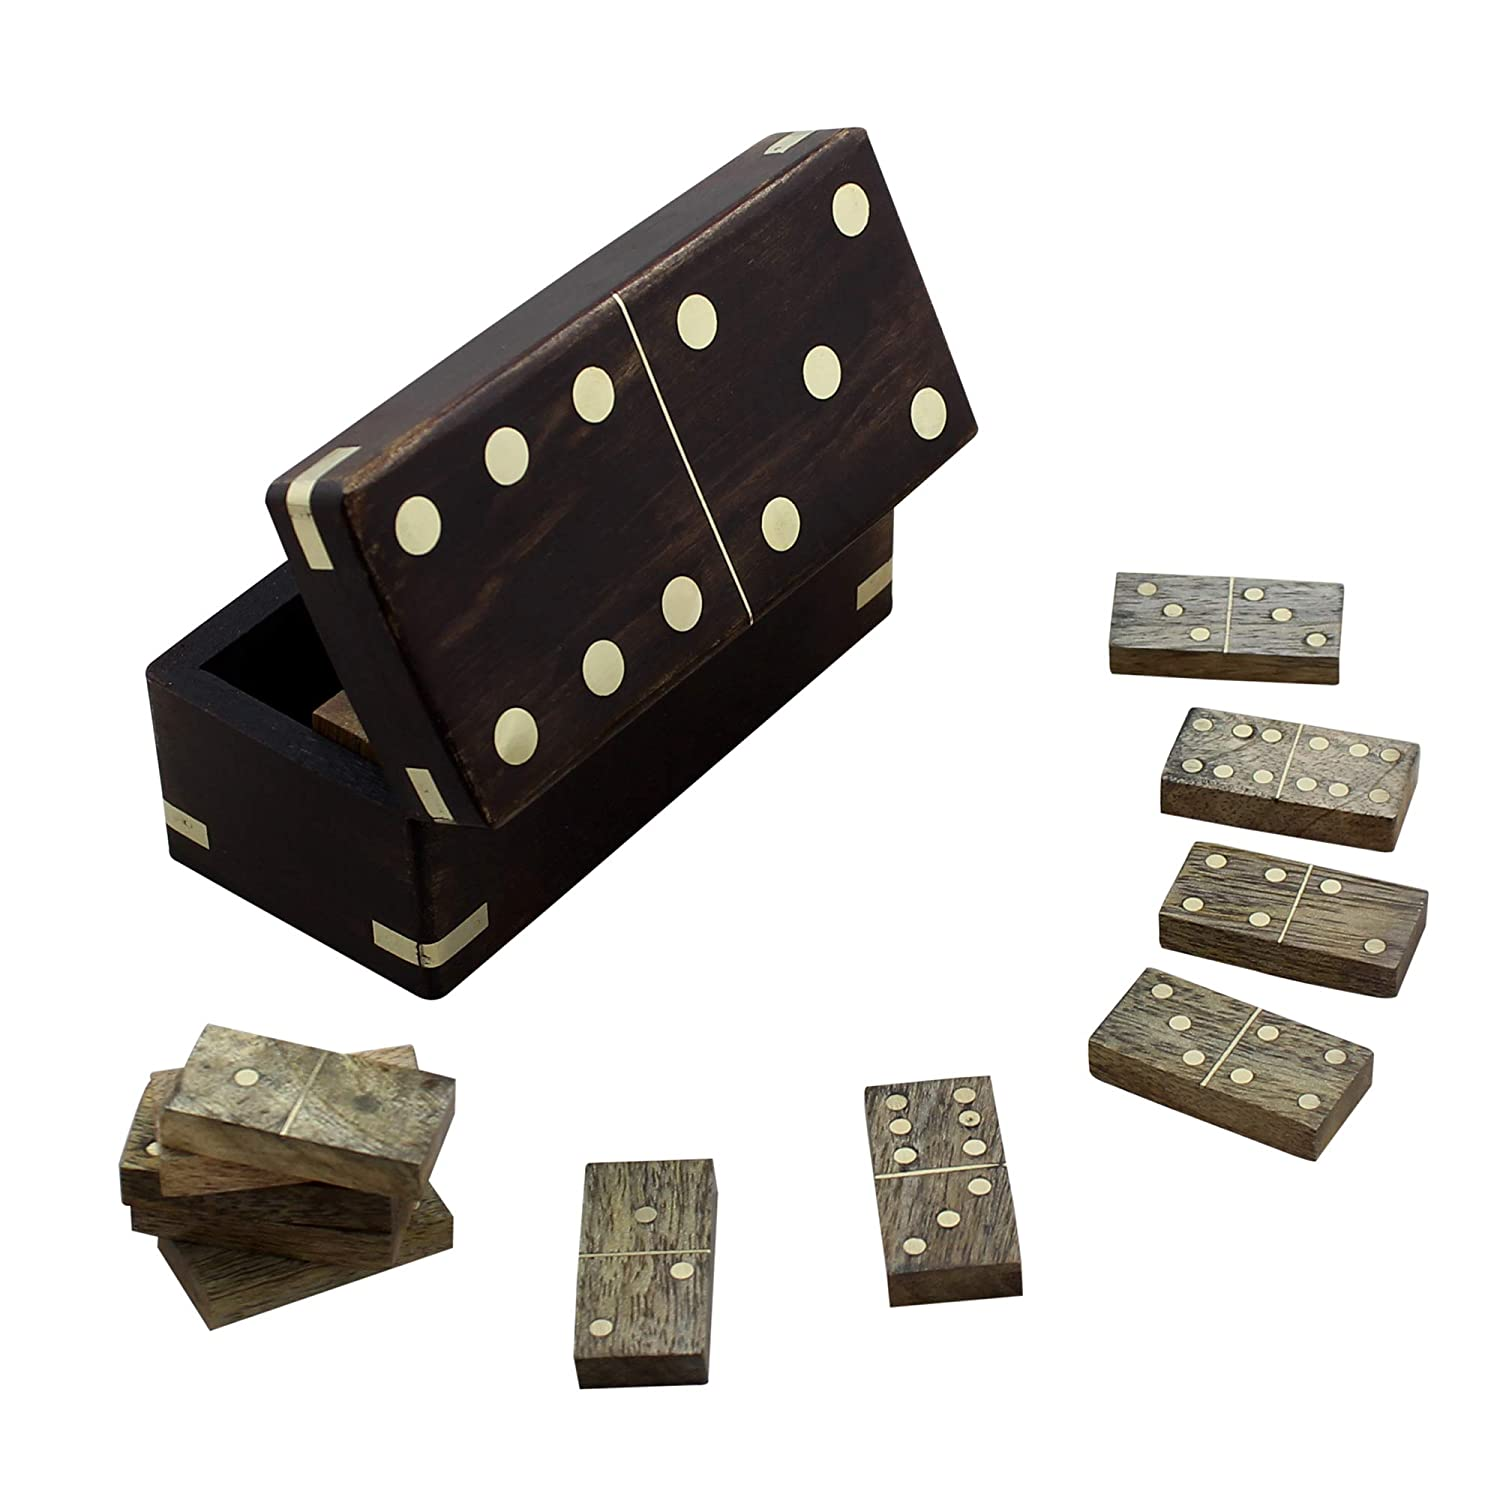 RoyaltyRoute Wooden Dominoes Sets with Double Six 28 Tiles Handmade Block Game Box Toys - Christmas Gifts for Kids, Adults, Boys & Girls